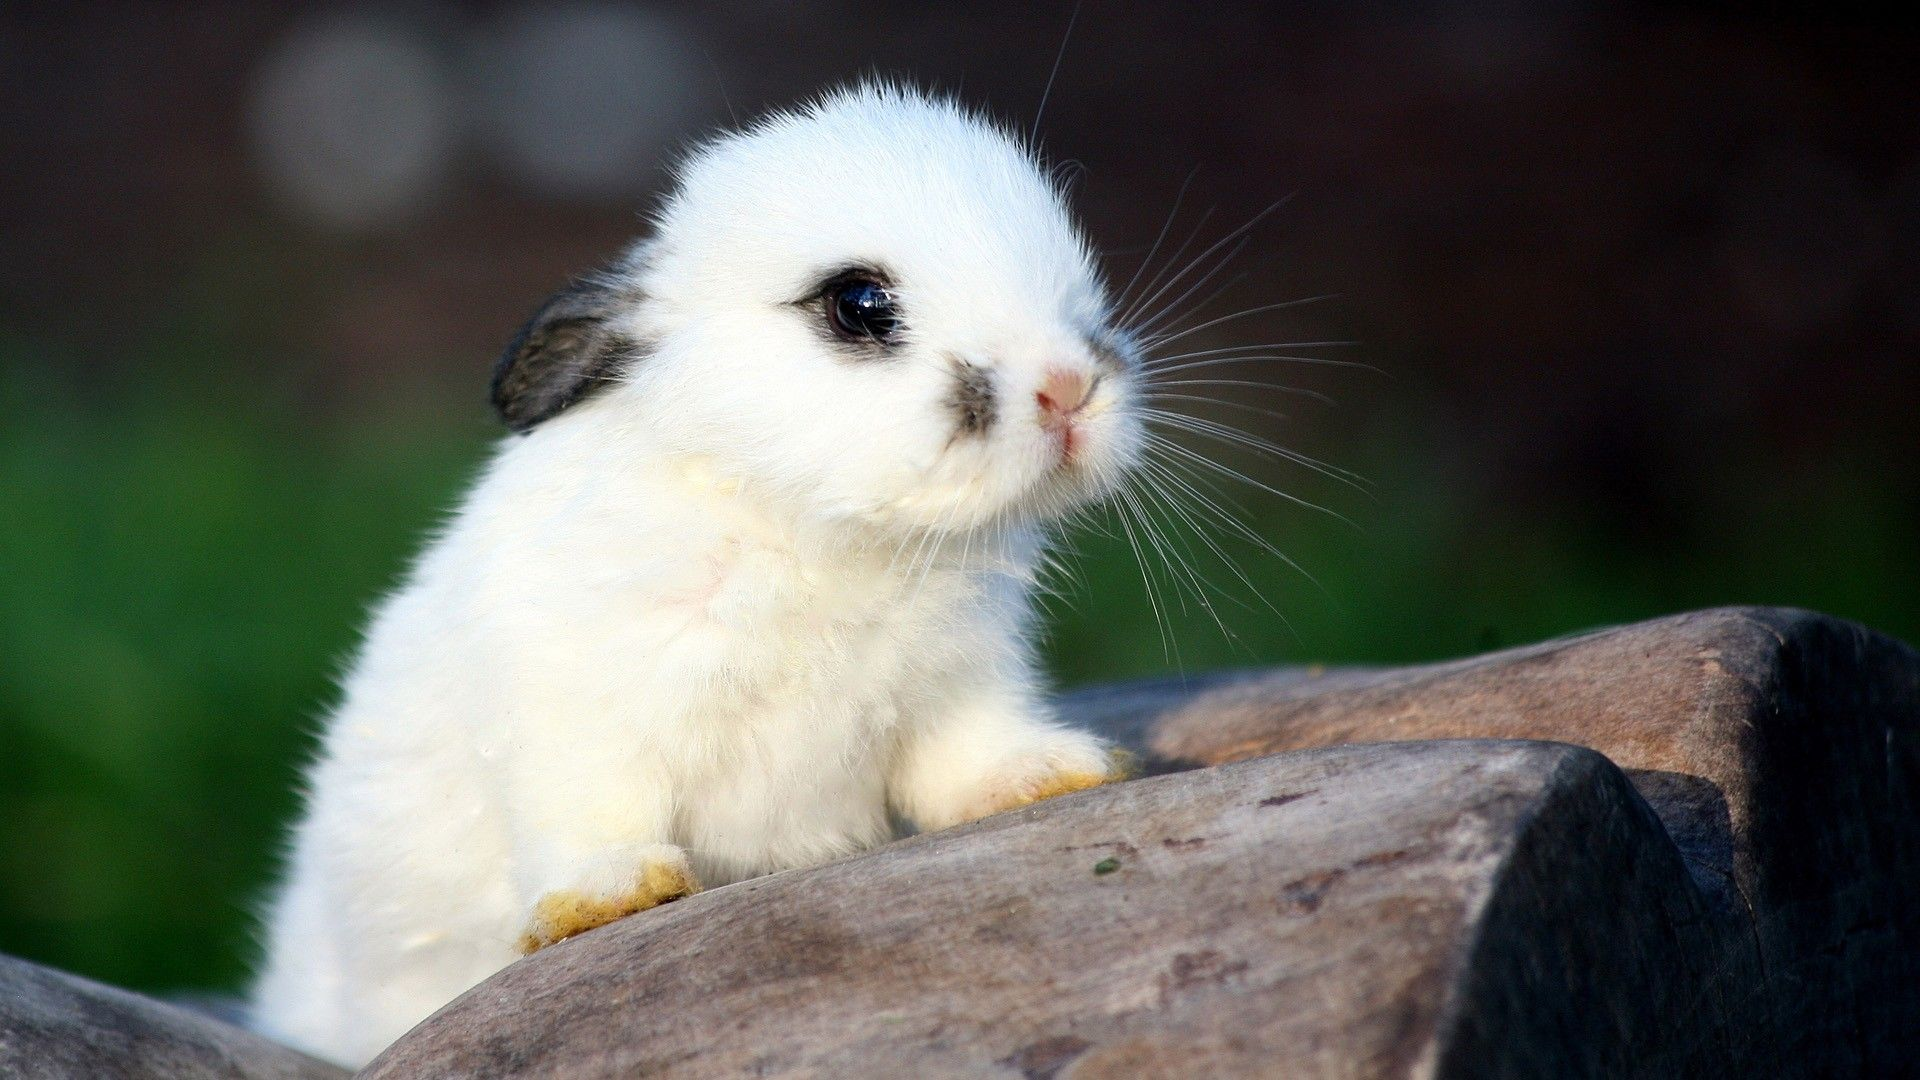 Cute Baby Animals Ever Wallpapers   Top Cute Baby Animals 1920x1080